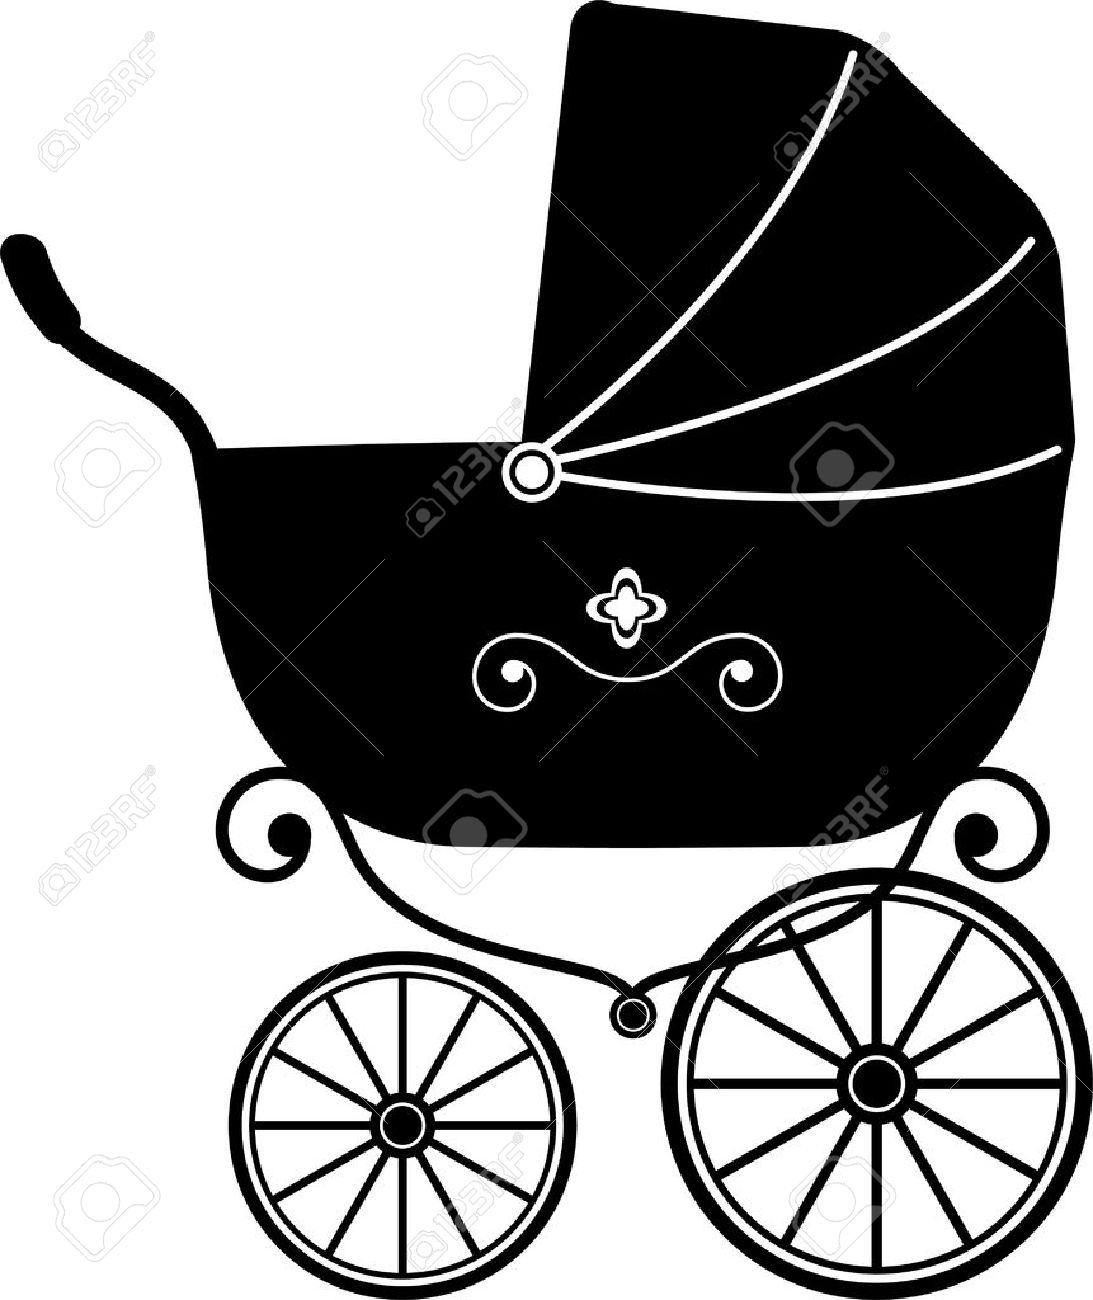 Baby Stroller over white (Silhouette) Stock Vector - 12284517